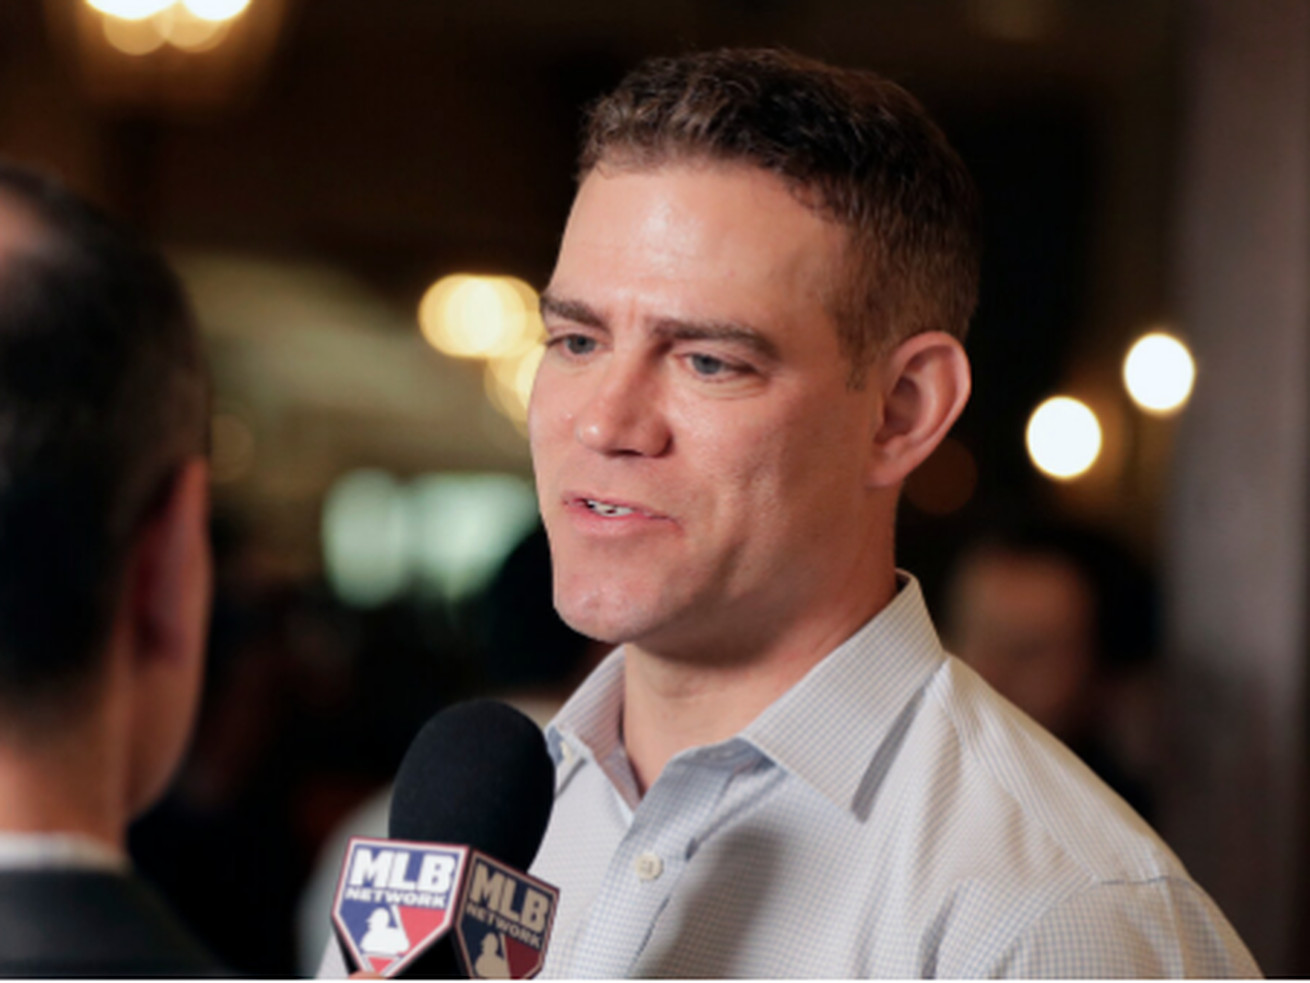 Theo Epstein joined the Cubs as president of baseball operations in 2011 and built them into a perennial contender by 2015.